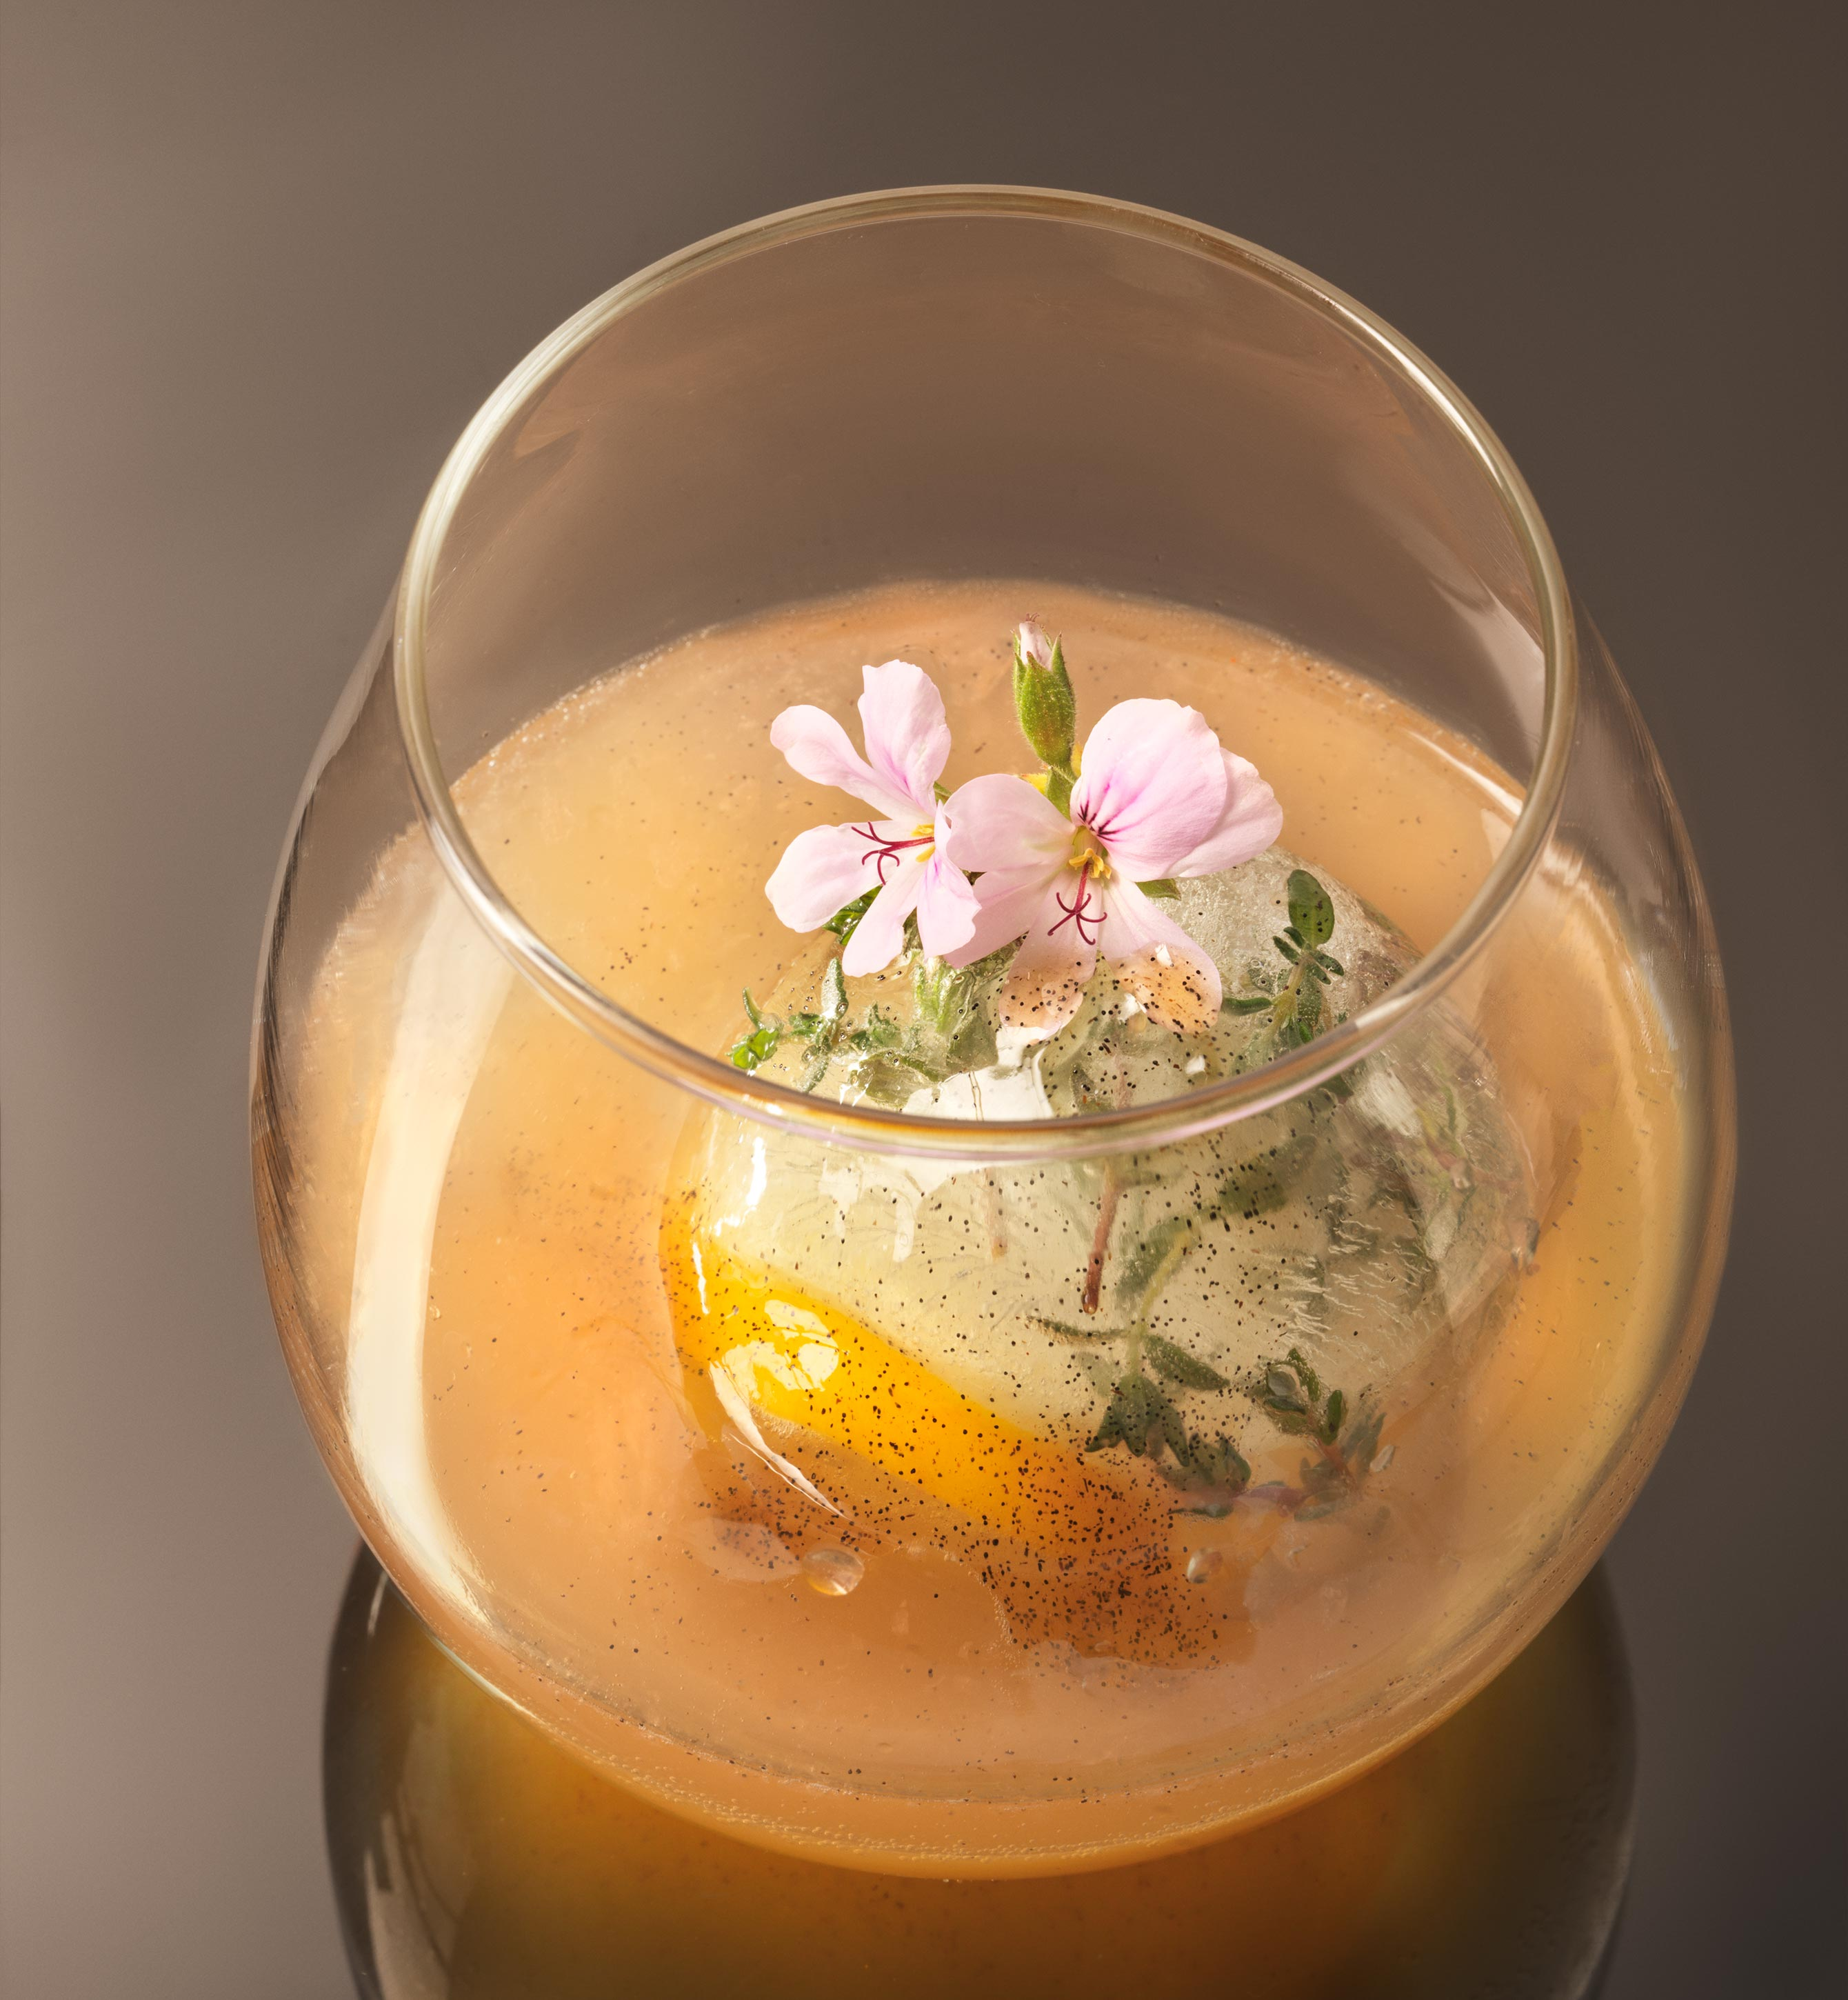 Vanilla Flower Cocktail | Steve Hansen Images Seattle Food Photographer